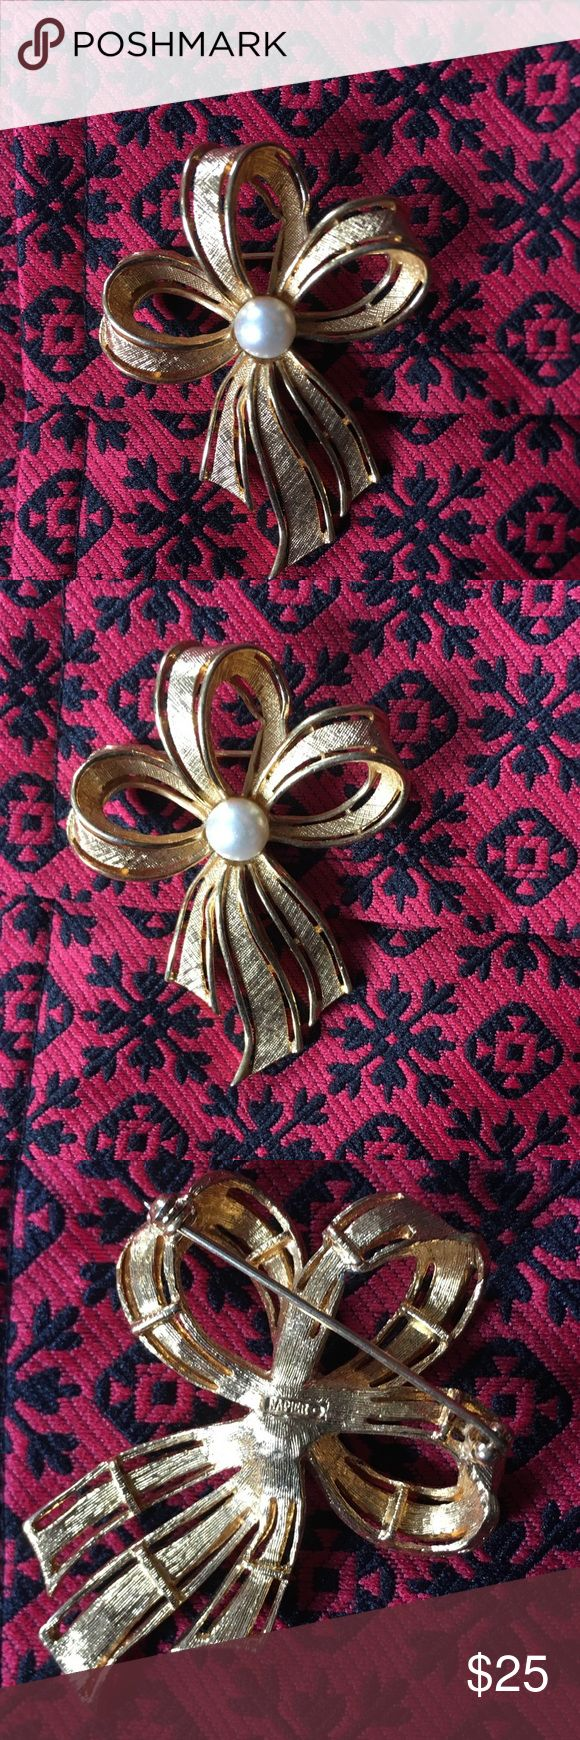 Vintage Napier Pearlescent Bow Brooche This classic Napier brooche is a classic spin on a bow pin. Classic and timeless Napier will never be out of style. High quality costume jewlery this will dress up any plain accessory. Brooche is in excellent working vintage condition, please refer to photos  for condition. All offers welcome Napier Jewelry